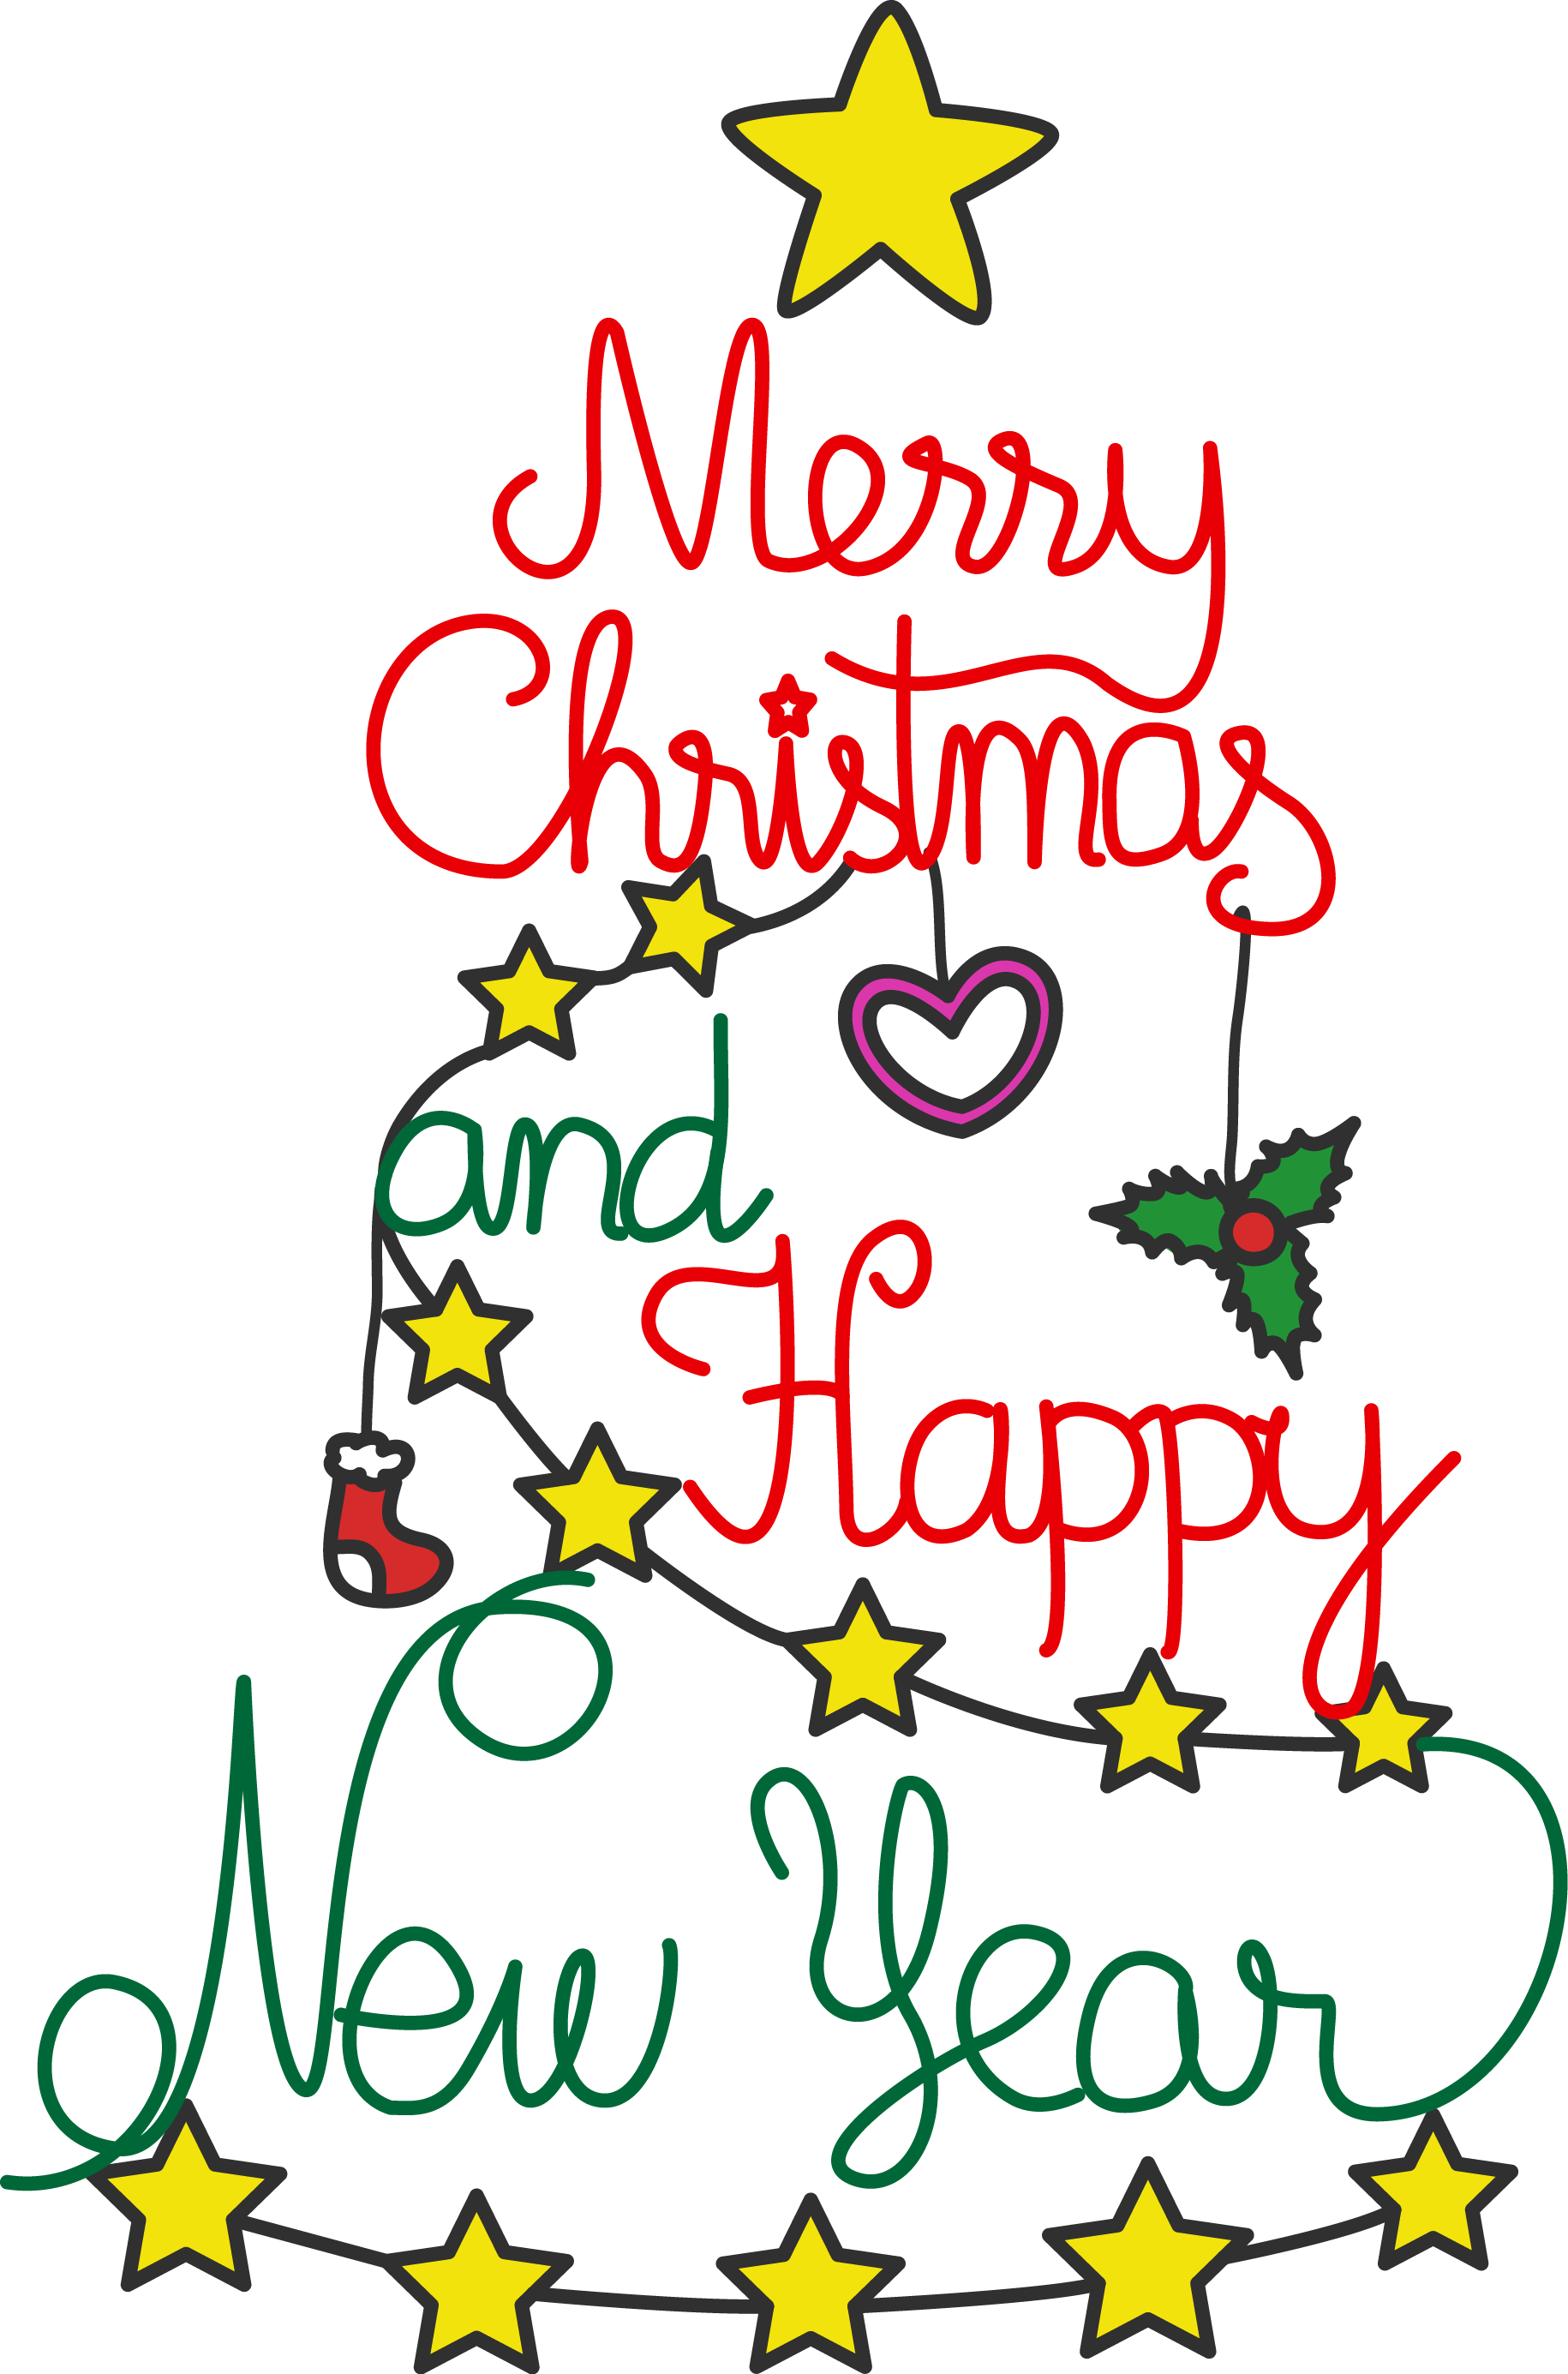 Merry christmas jesus clipart vector free stock Merry Christmas And Happy New Year Clip Art – Fun for Christmas vector free stock